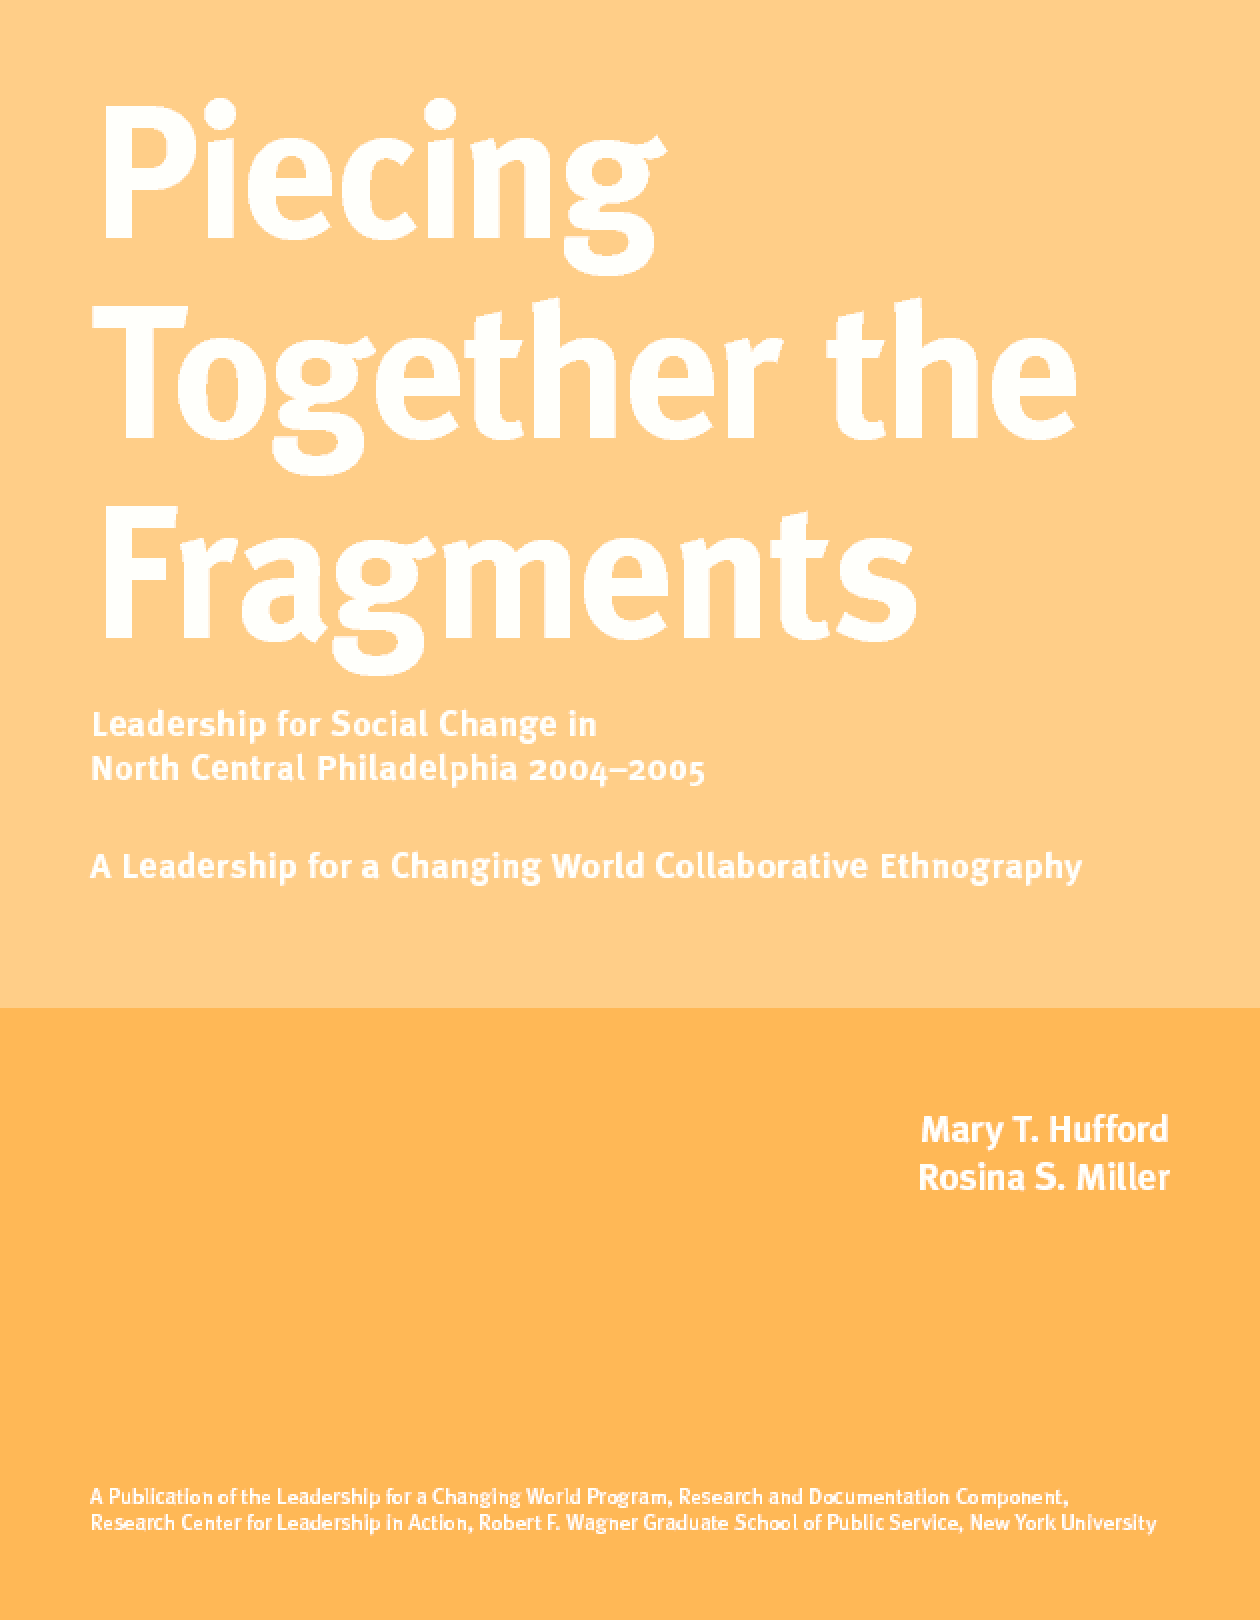 Piecing Together the Fragments: An Ethnography of Leadership for Social Change in North Central Philadelphia 2004-2005